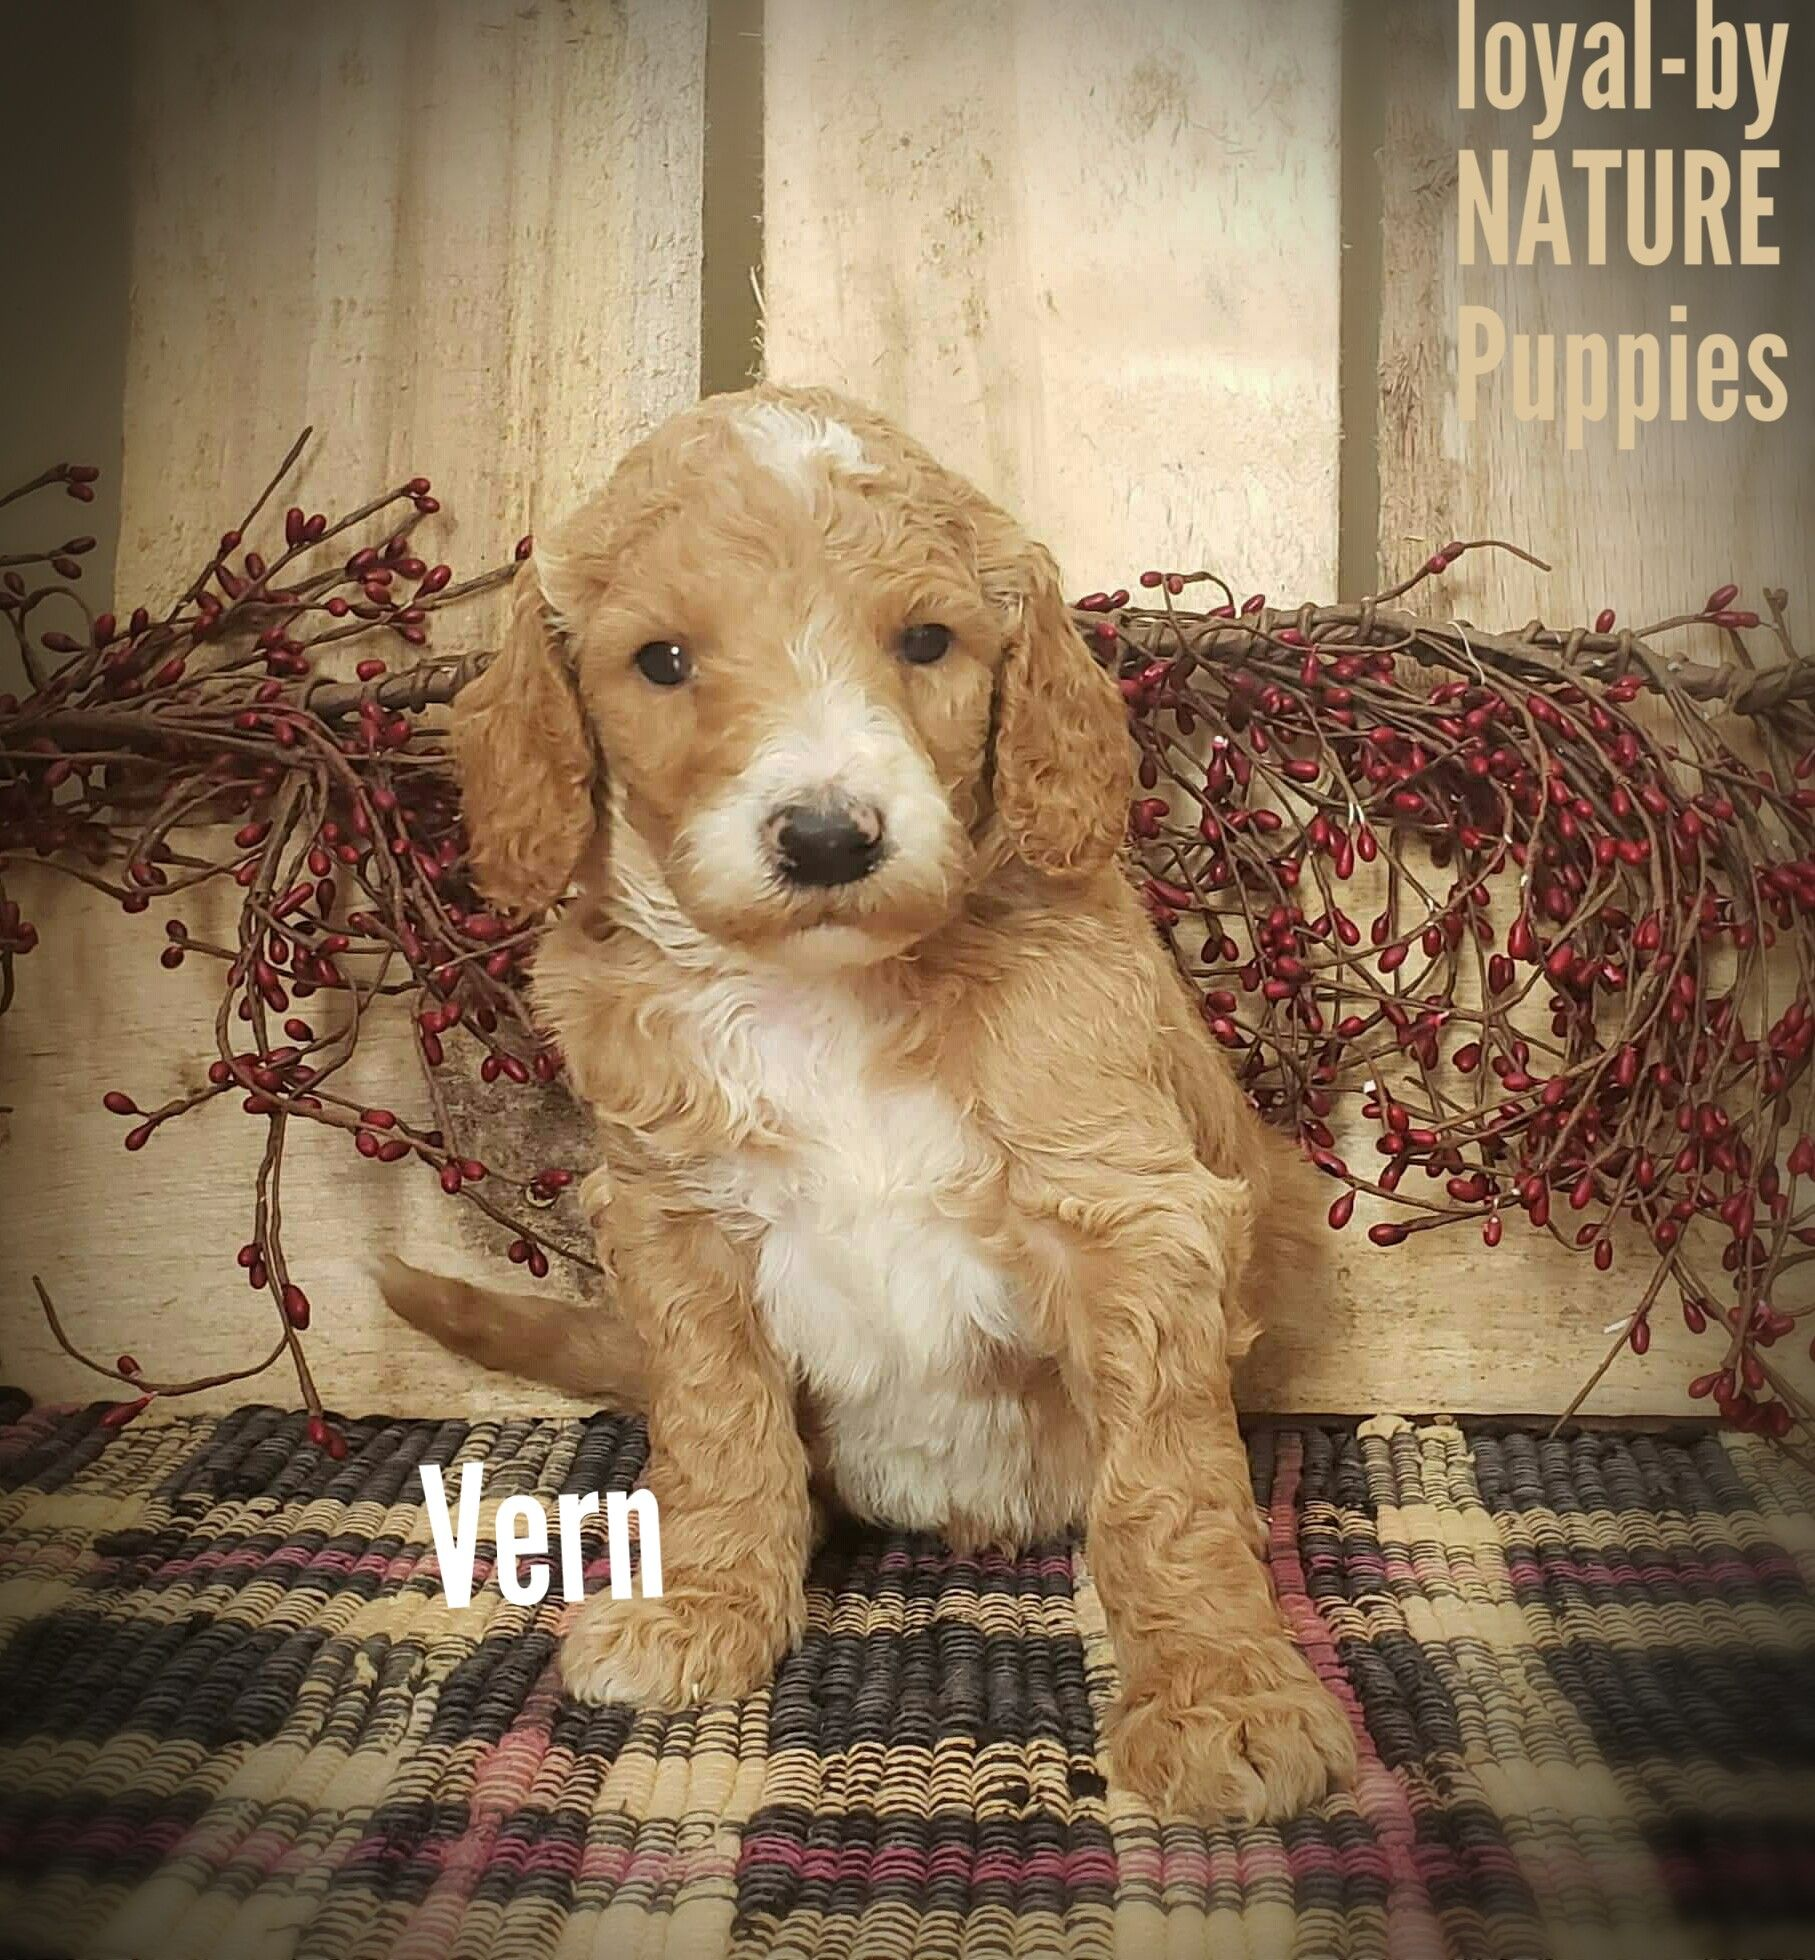 Vern AKC Standard Poodle Poodle puppies for sale